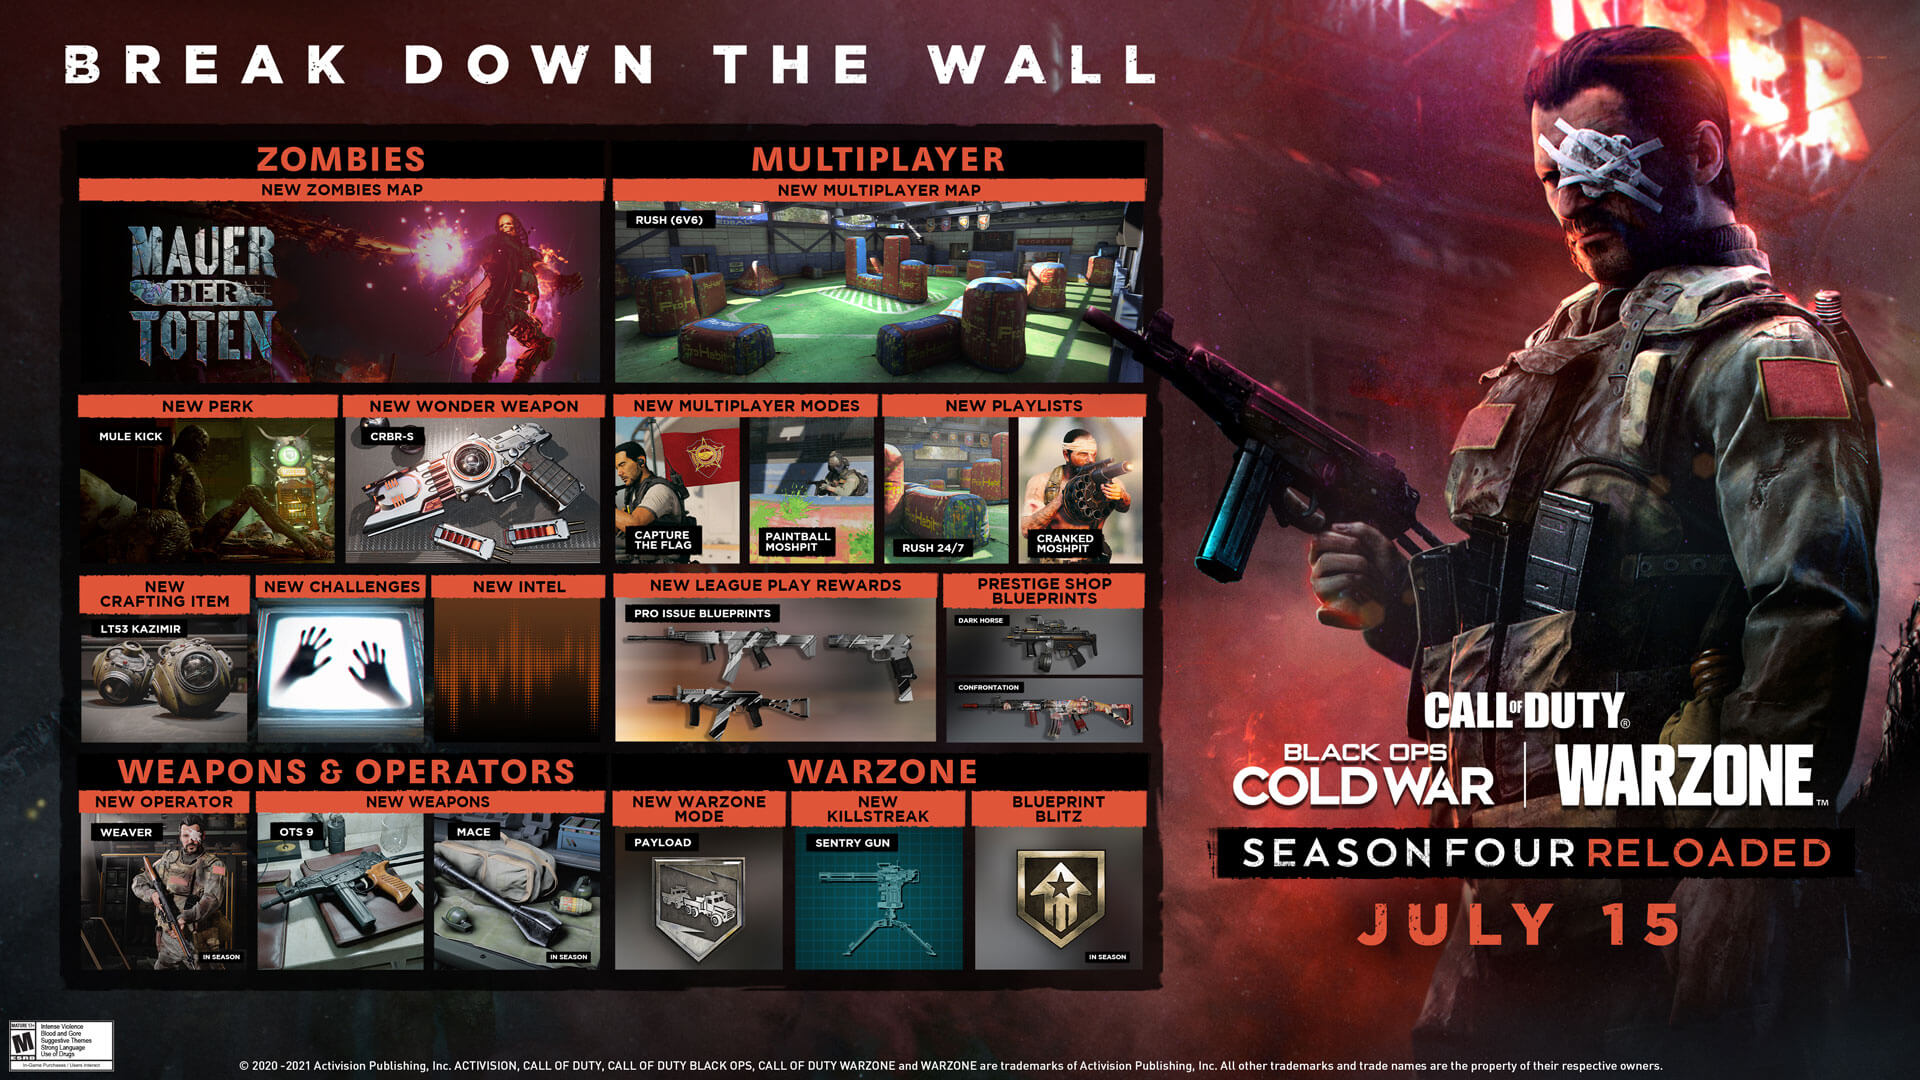 Call of Duty Black Ops Cold War & Warzone: Roadmap for Season 4 Reloaded - that's in the update